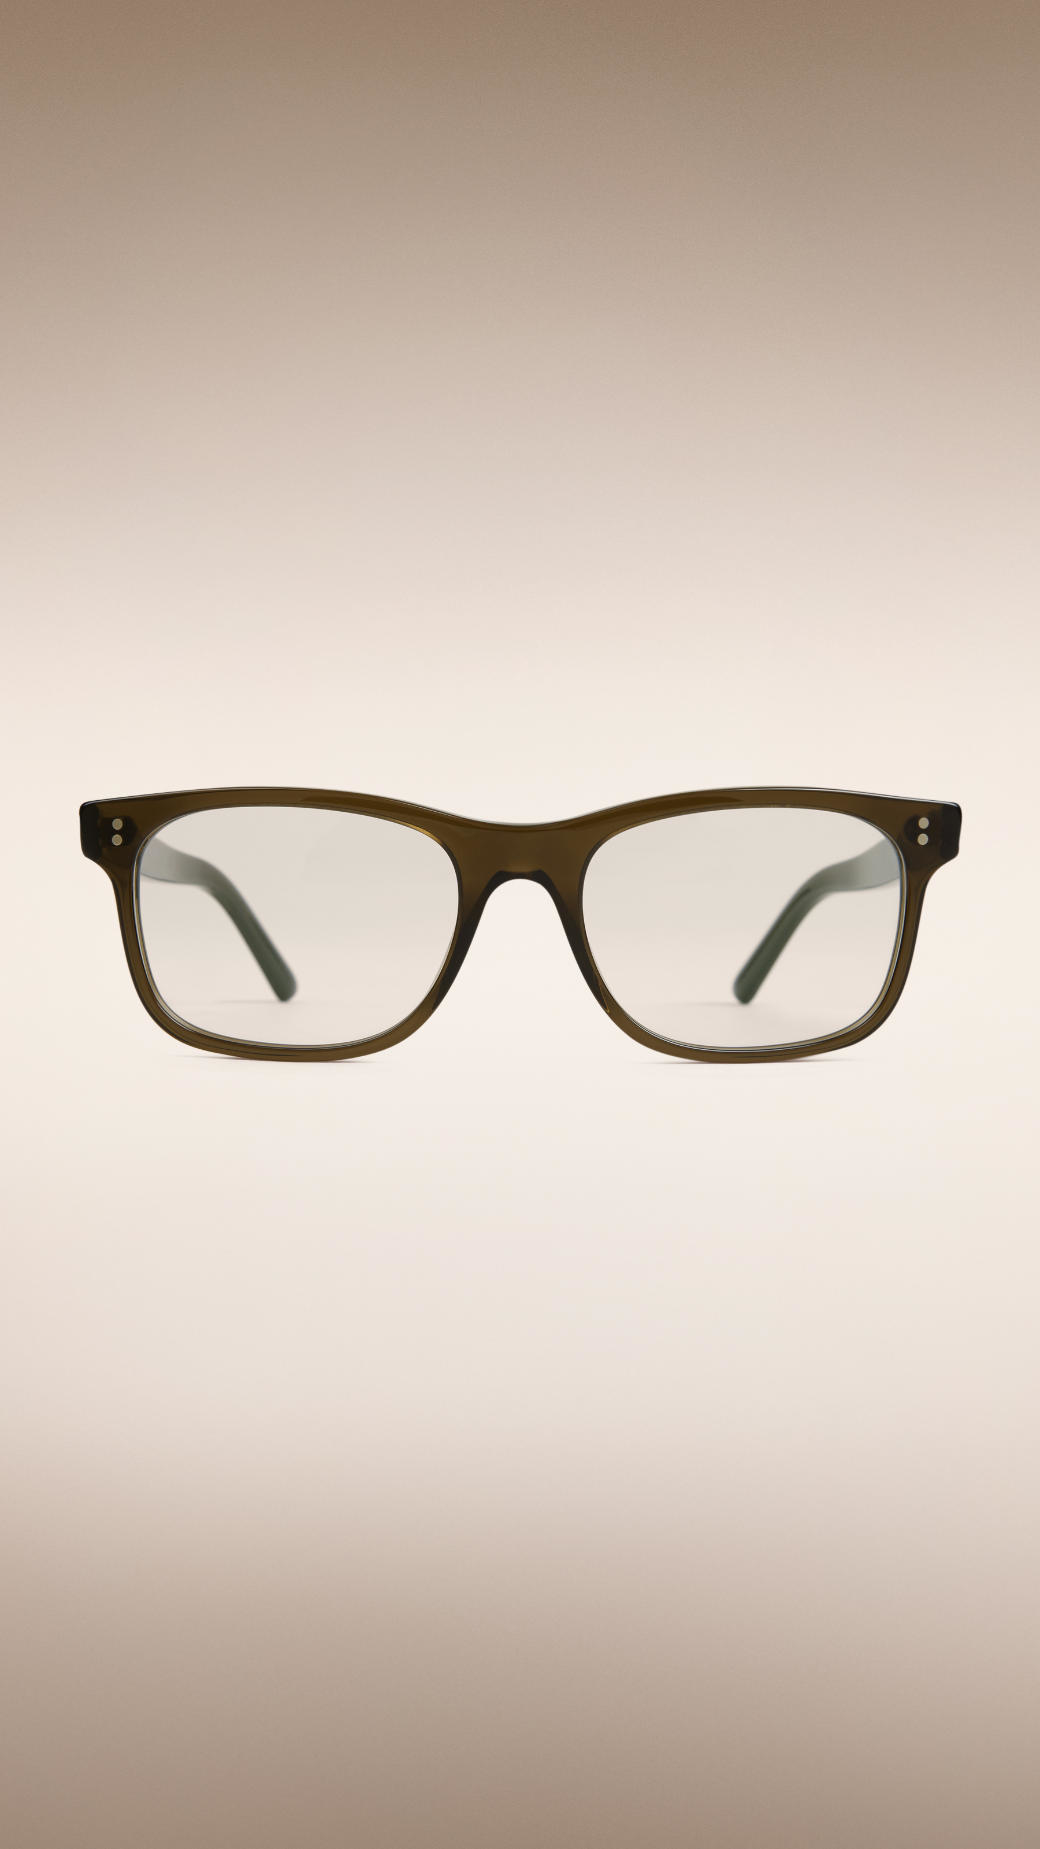 e29775c63bc0 Burberry Square Frame Sunglasses With Clip-on Lenses Olive in Black ...